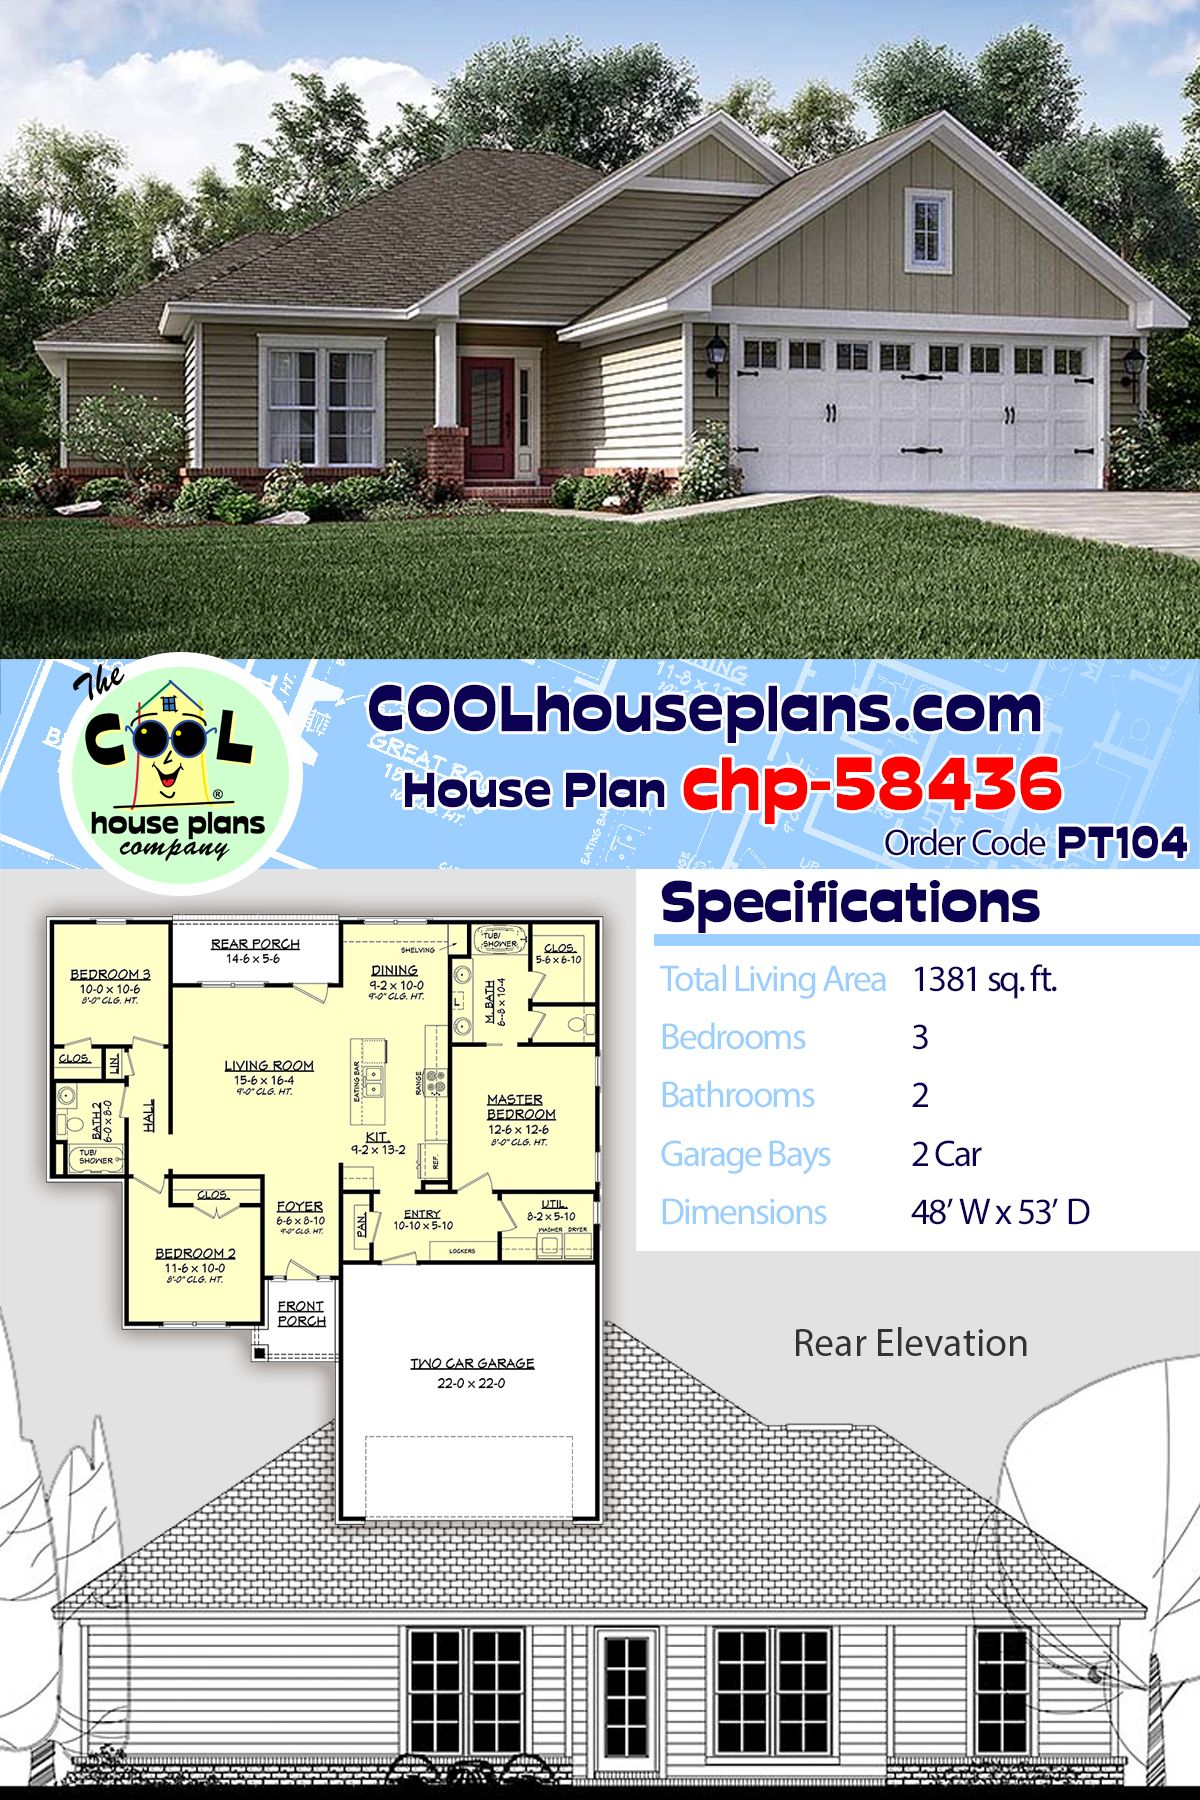 Traditional Home Design Chp 58436 With Open Floor Plan And Split Bedroom Layout At Cool House Plans House Plans Best House Plans House Design